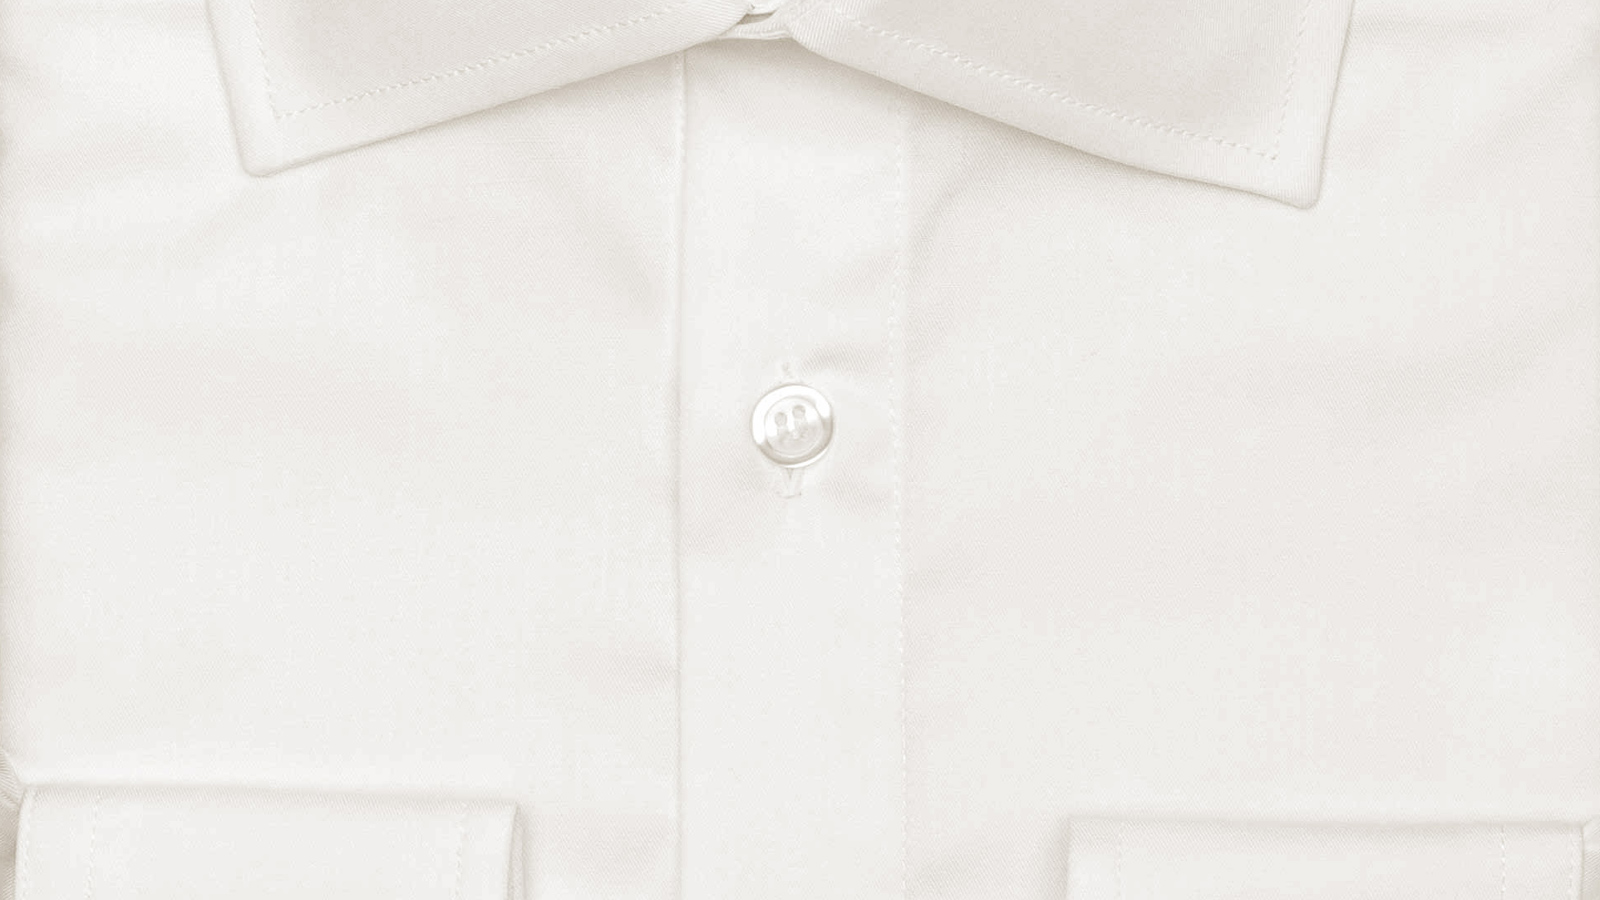 Ivory Two-Ply Cotton Twill Shirt - slider image